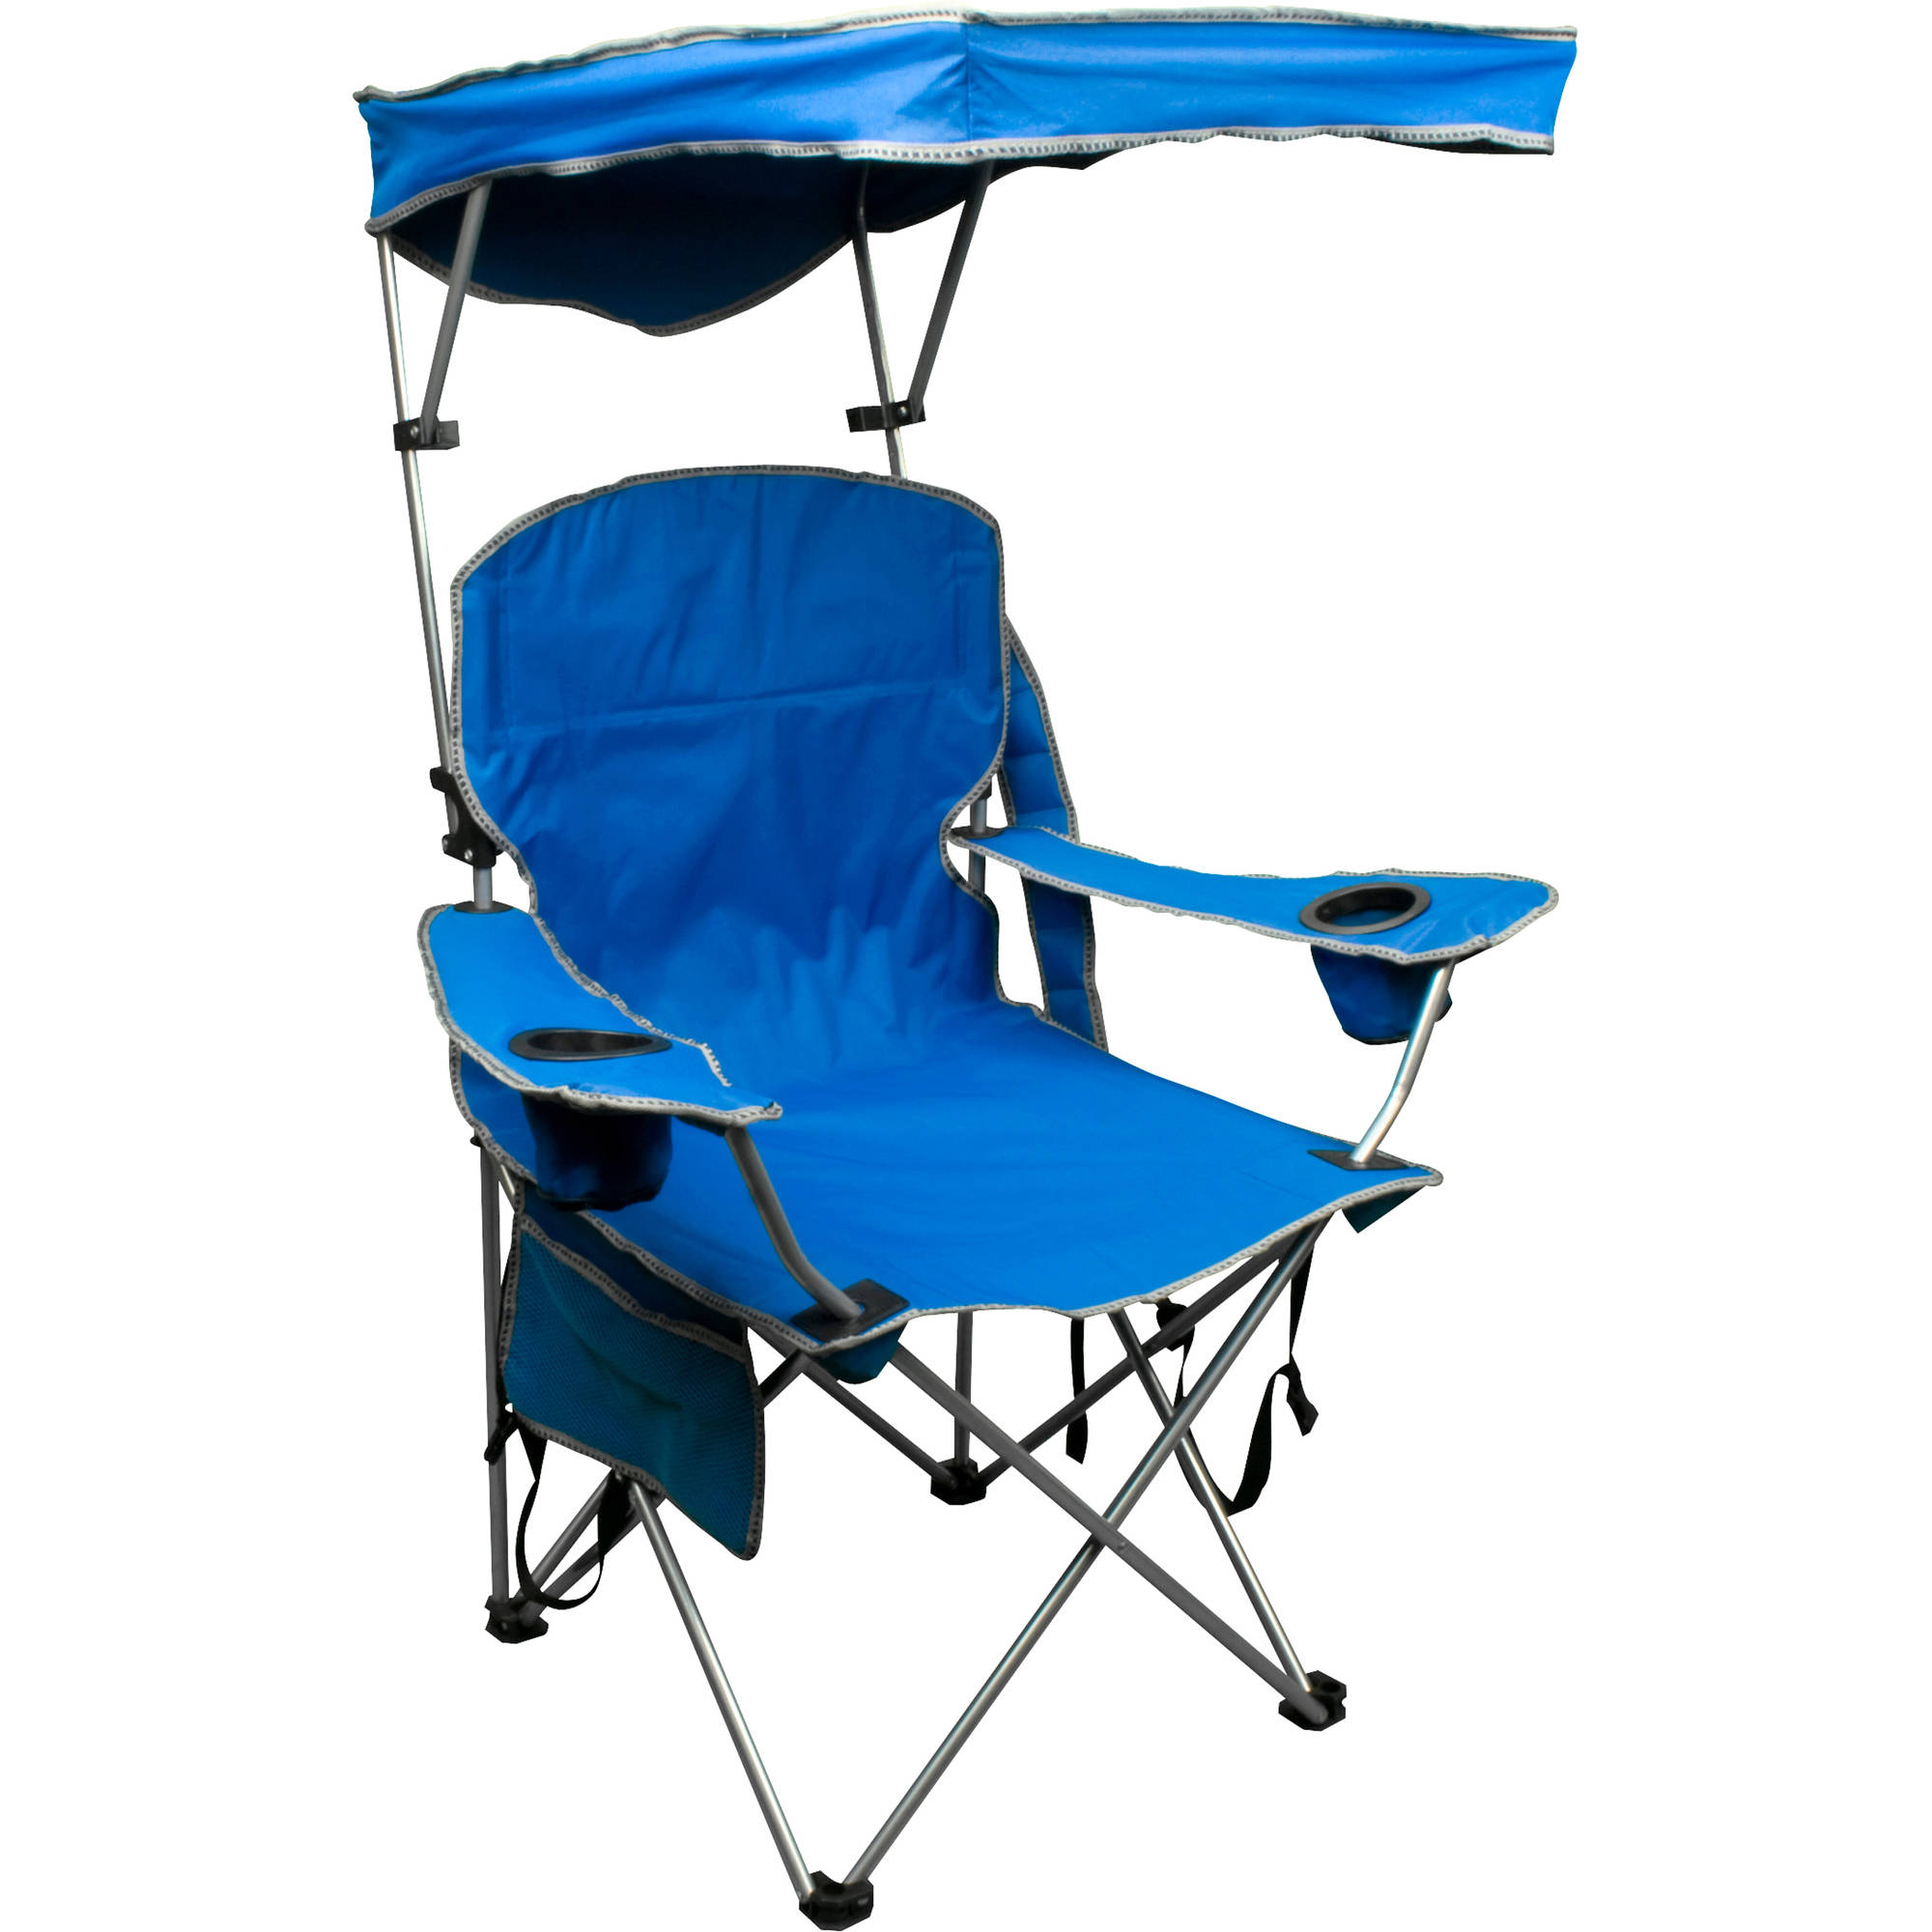 Camping Chair With Canopy Quik Shade Adjustable Canopy Folding Camp Chair